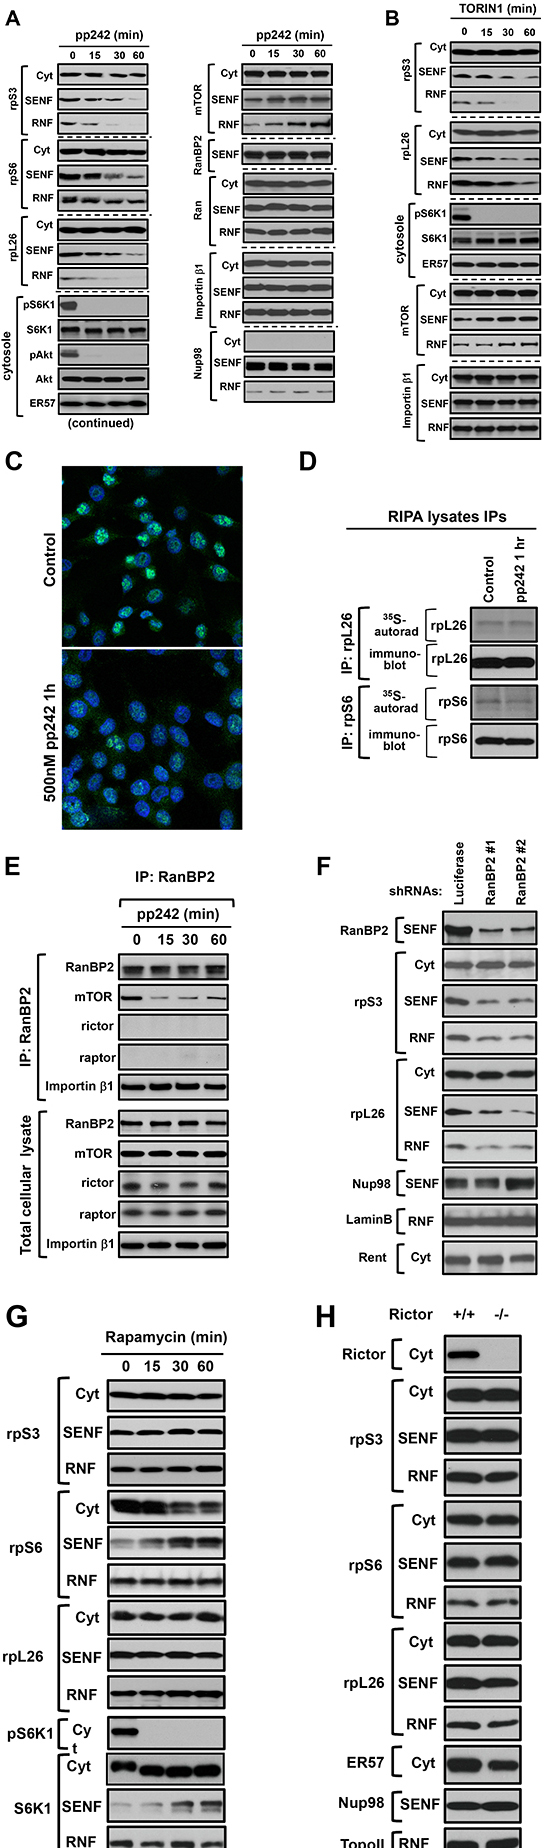 The mTOR kinase activity regulates the nuclear accumulation of ribosomal proteins independent of rapamycin and rictor expression.